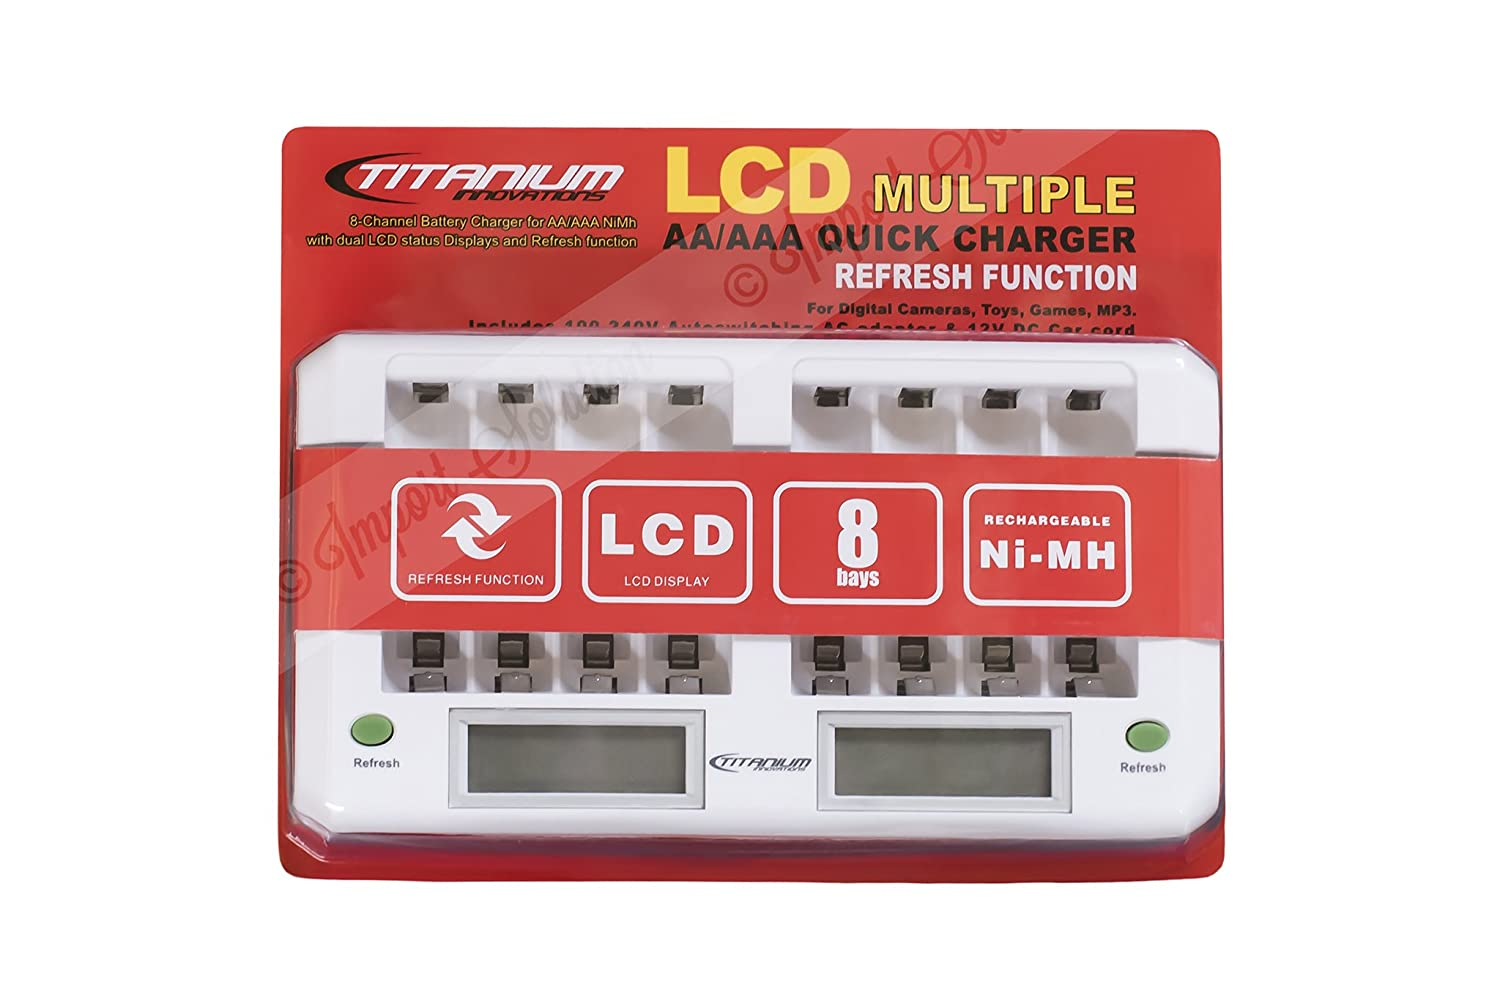 Titanium TITANIUM-CH-8800 100-240V AC 8-Bay Smart Fast Battery Charger LCD Display DC Chargers